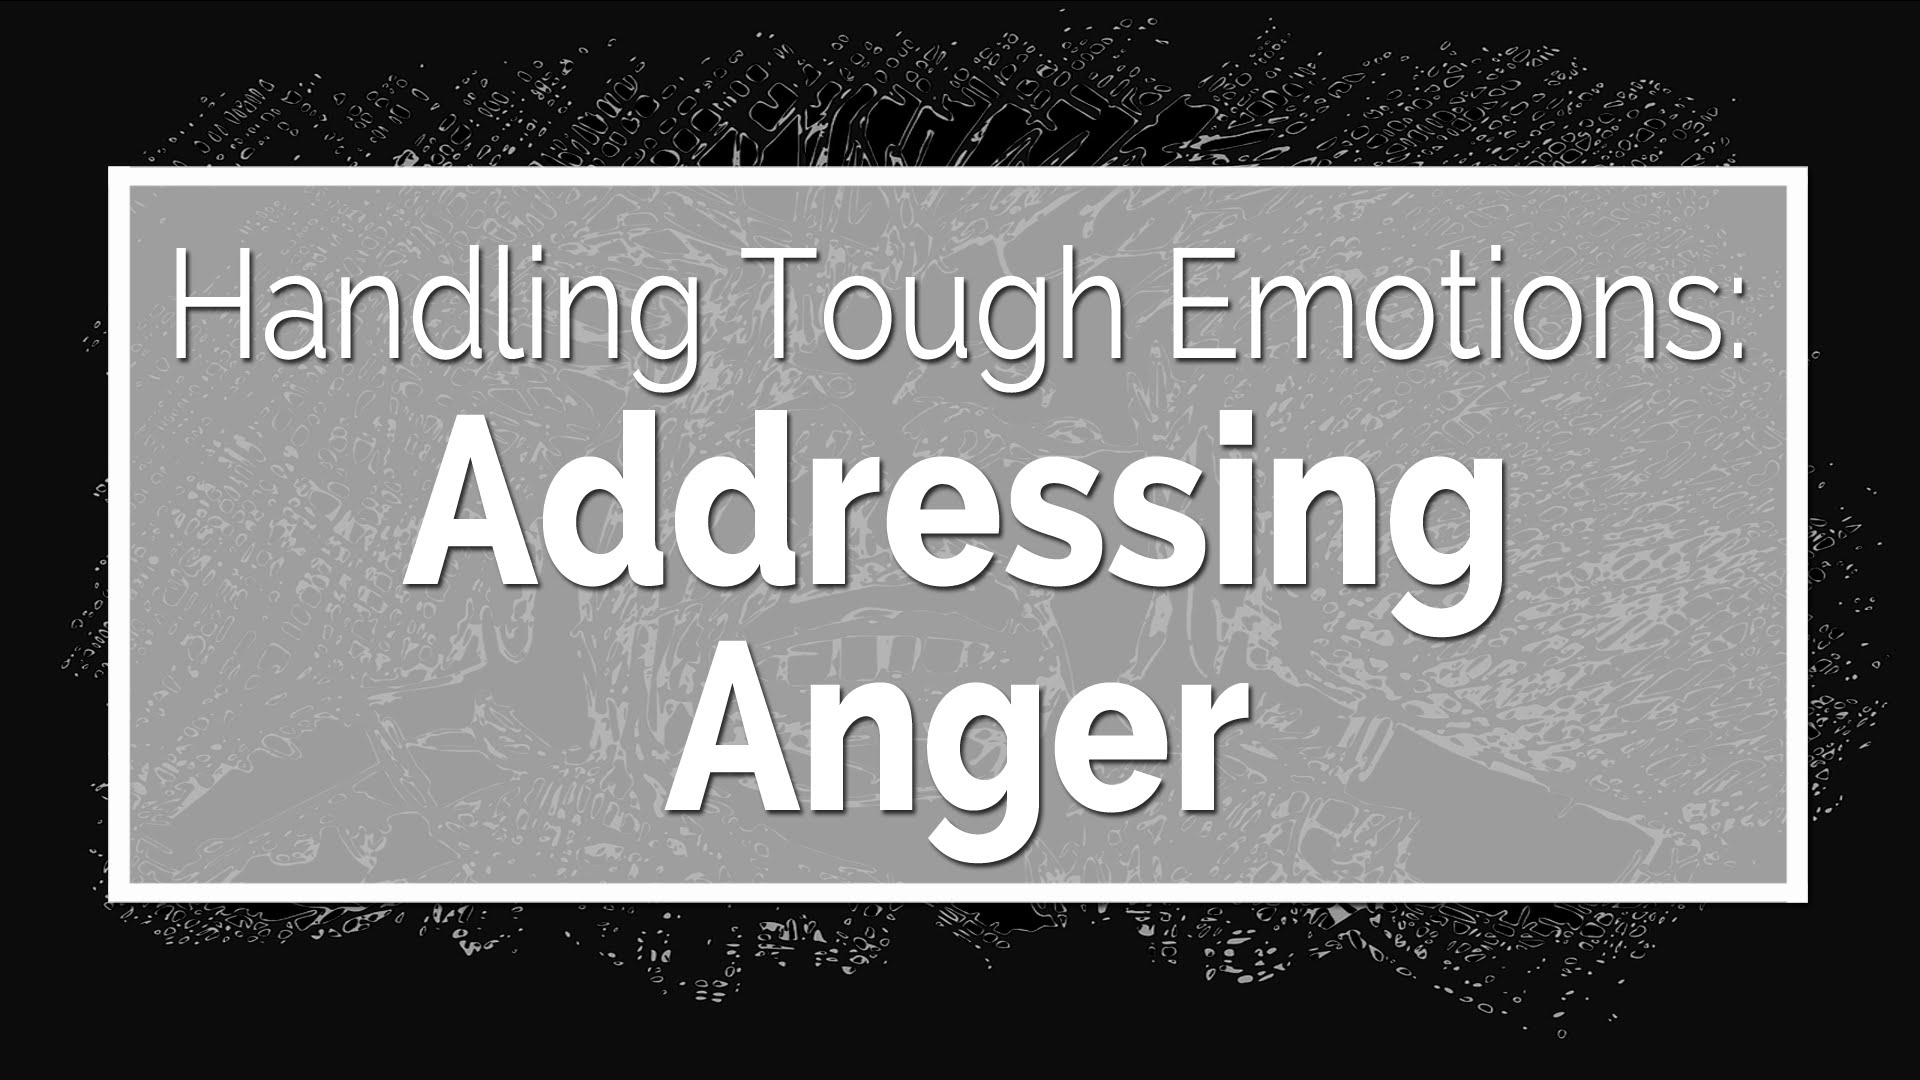 Addressing Anger